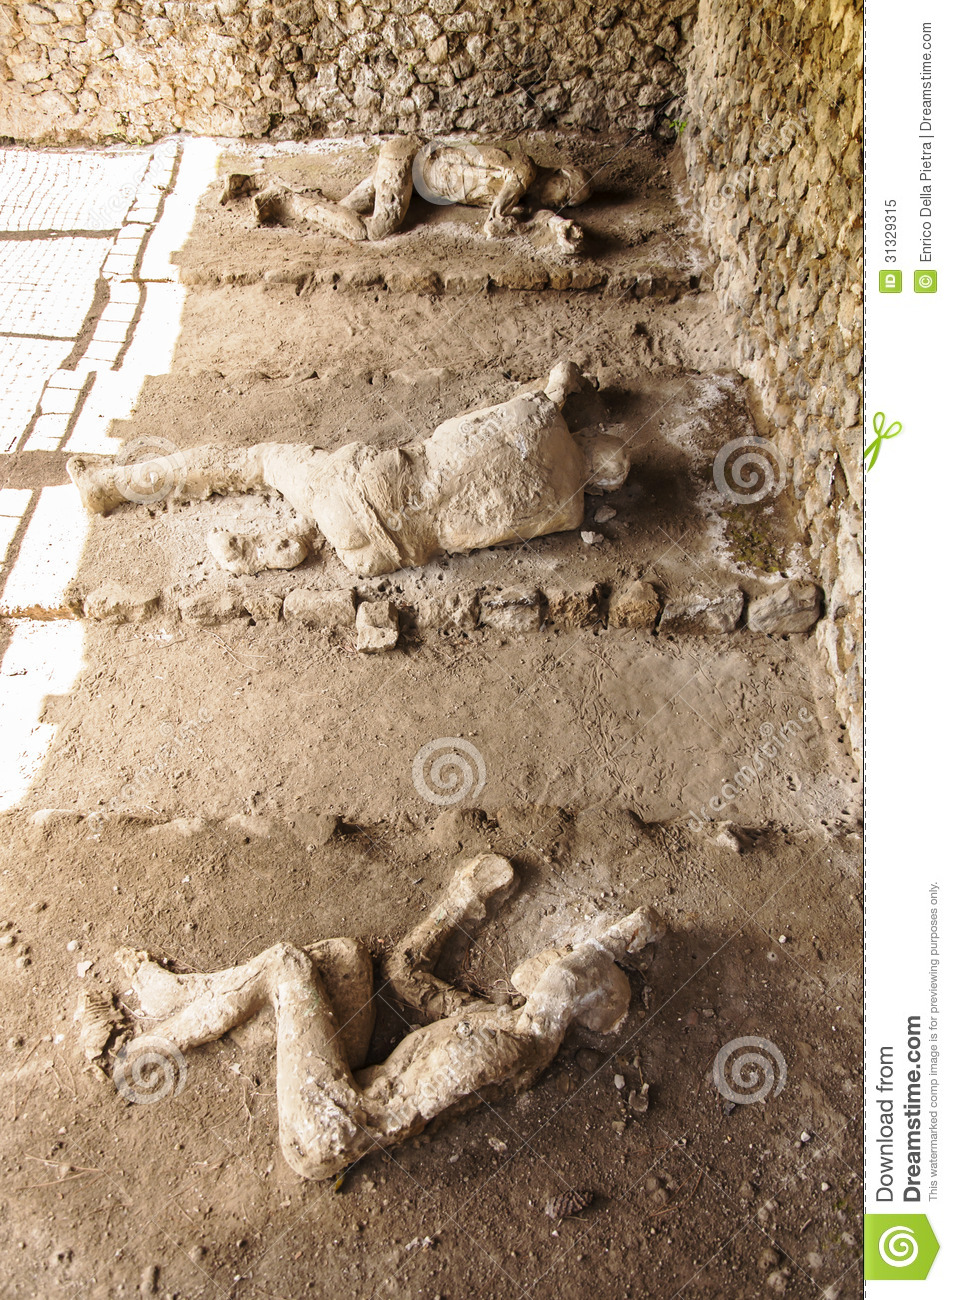 Job (The NIV Application Commentary John H. Walton) Pompeii pictures of victims kissing